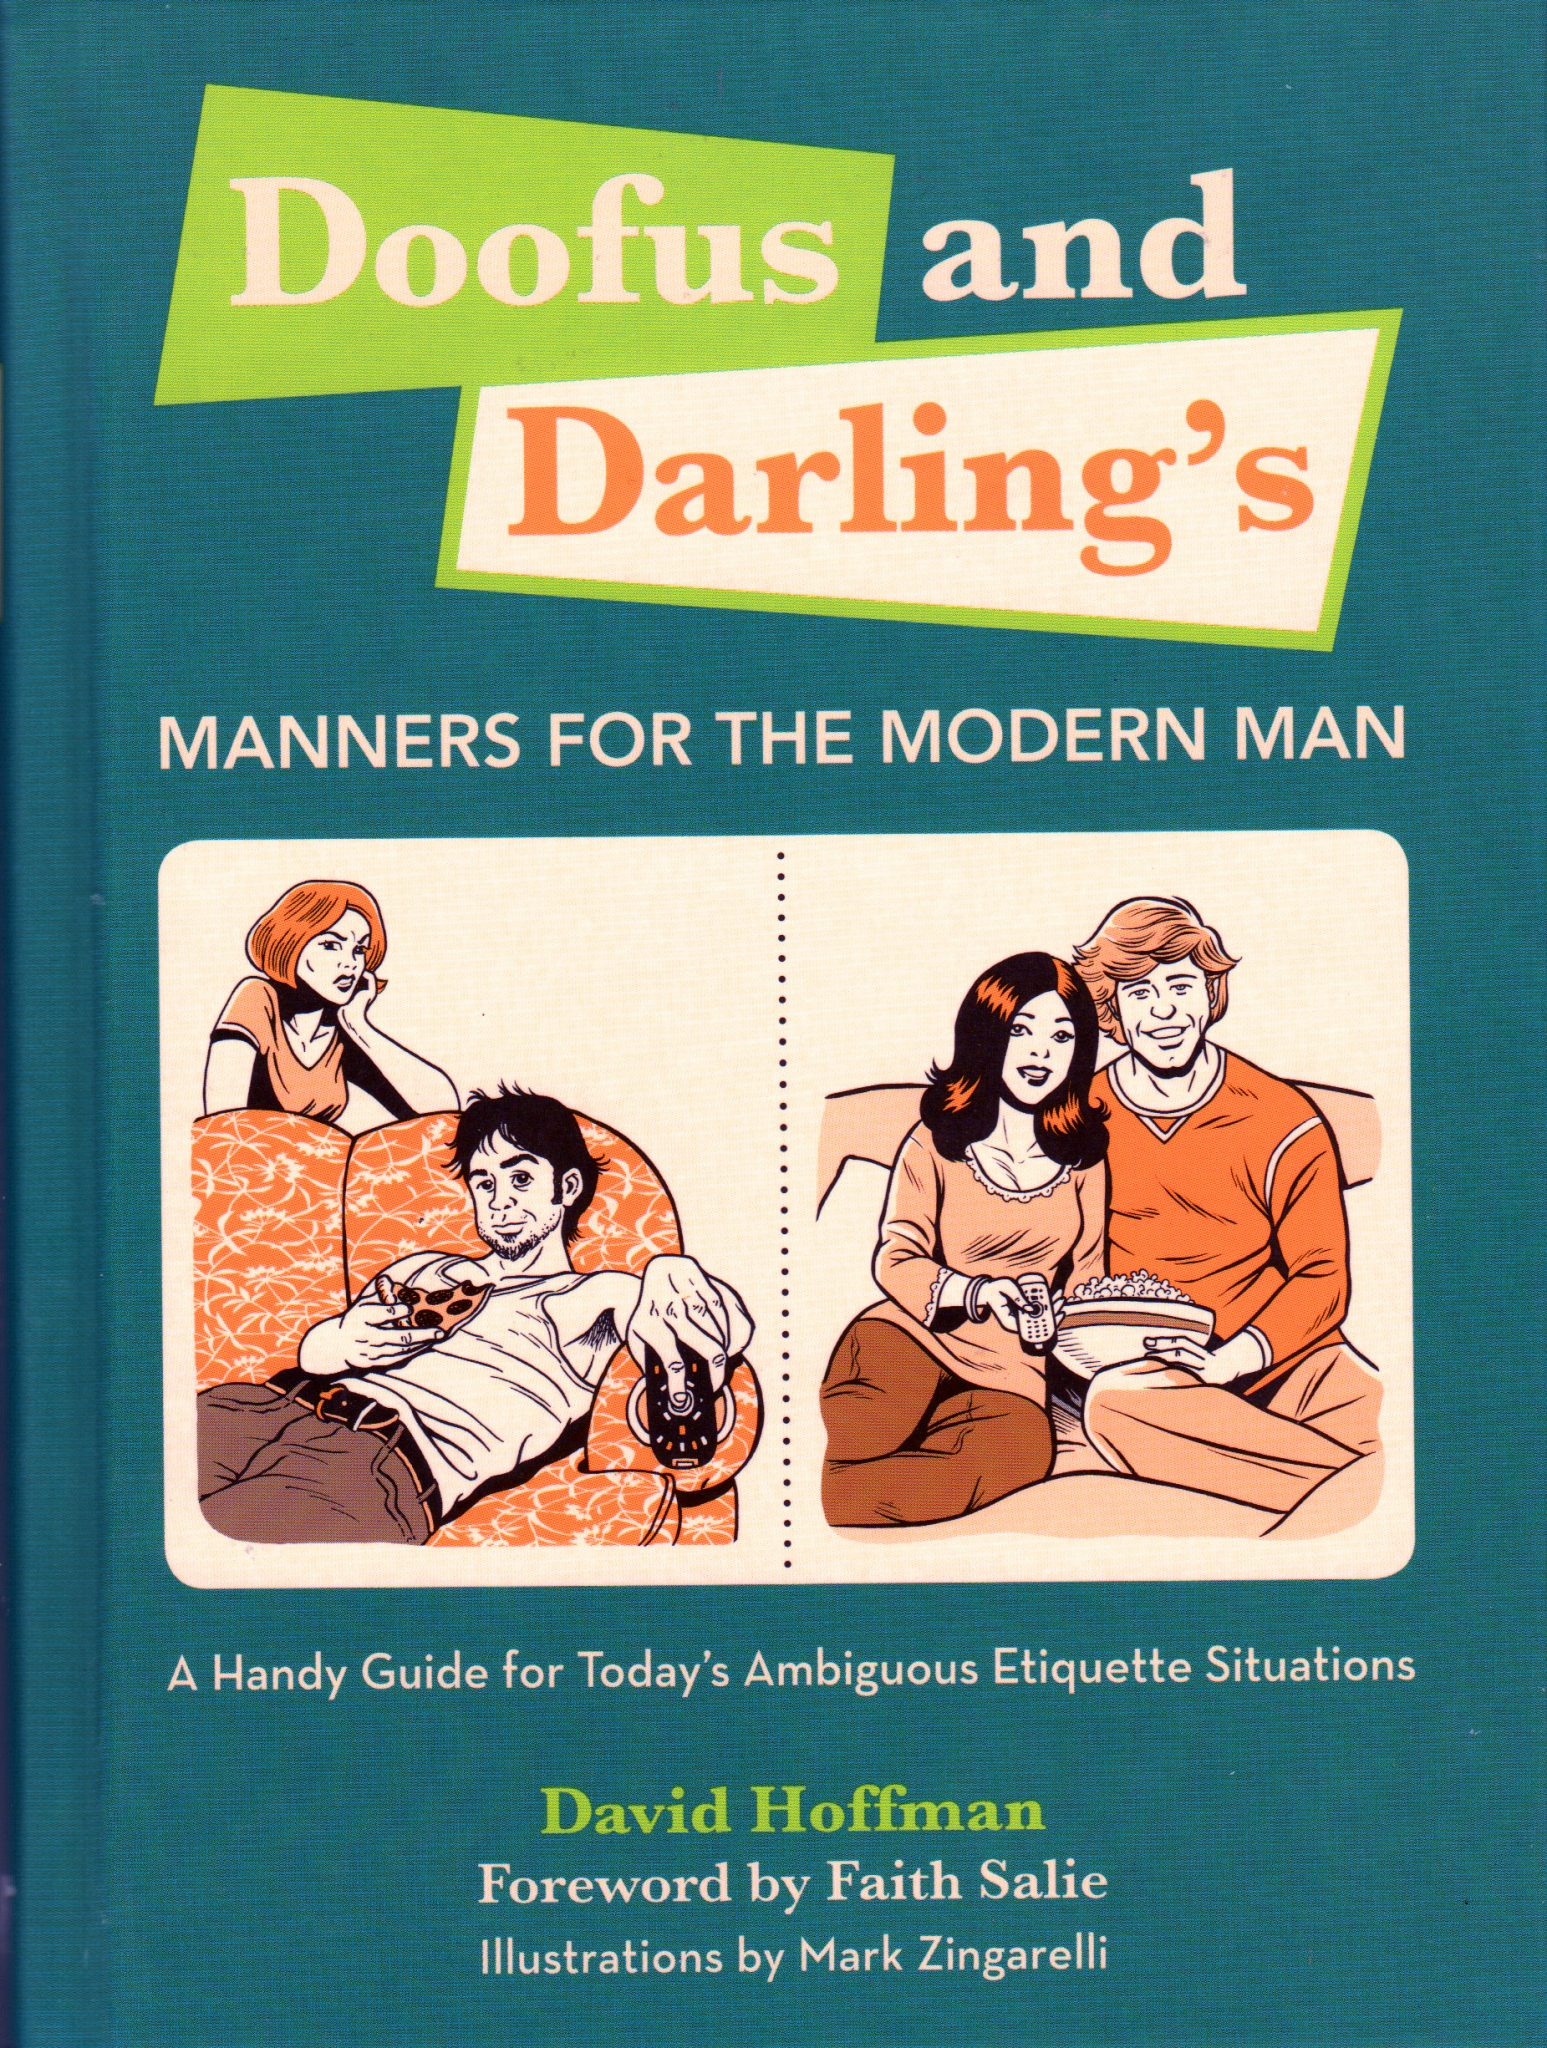 Doofus and Darling's